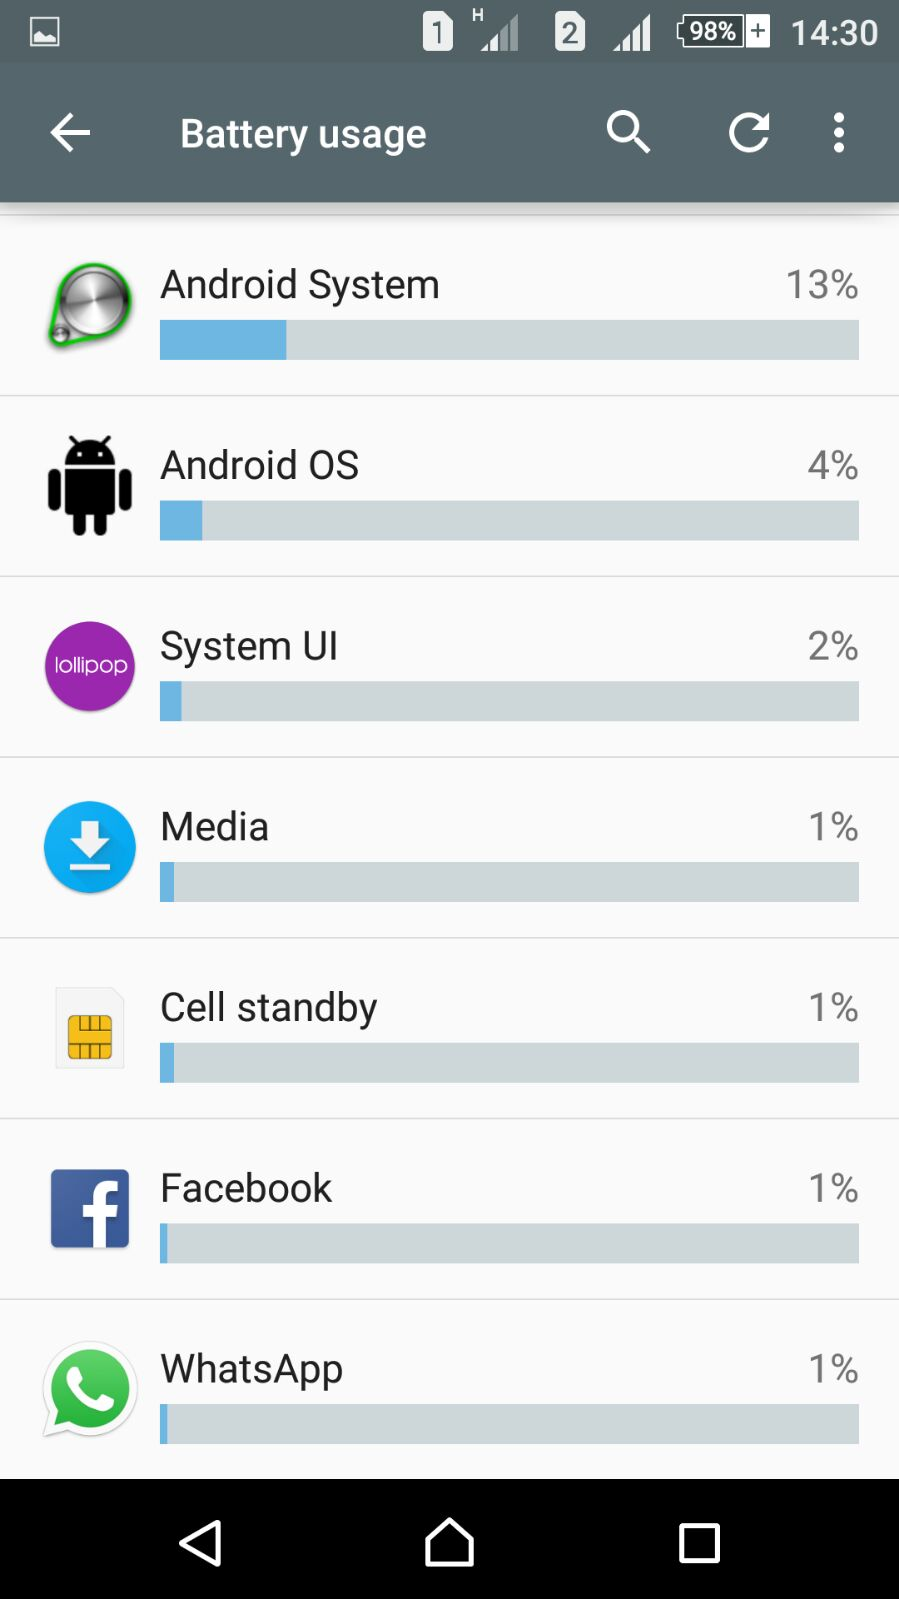 Sony Xperia C5 Ultra Battery Usage 2